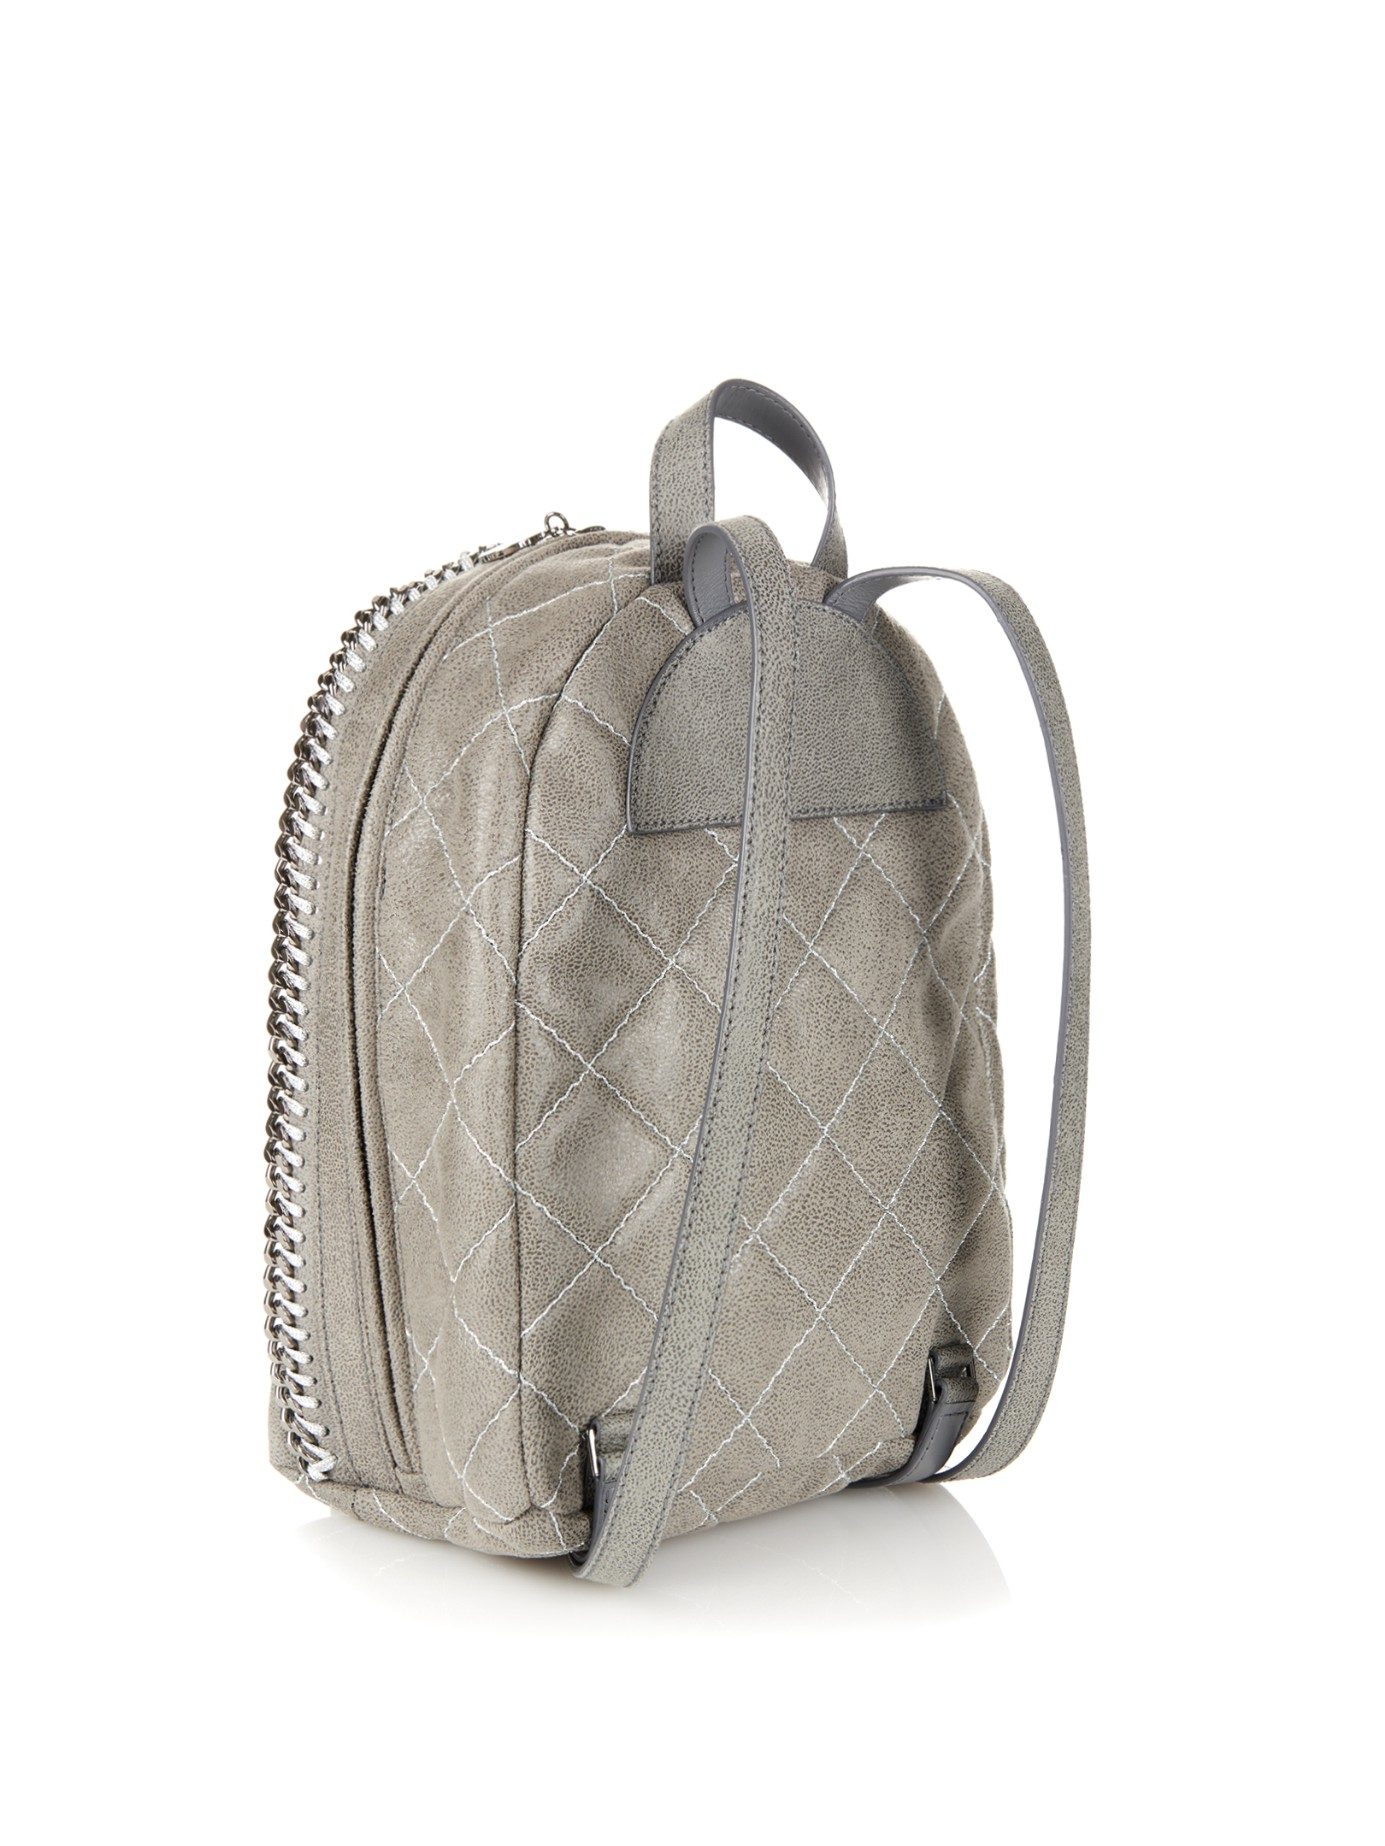 7465bf37026a Gallery. Previously sold at  MATCHESFASHION.COM · Women s Mini Backpack  Women s Stella Mccartney Falabella ...